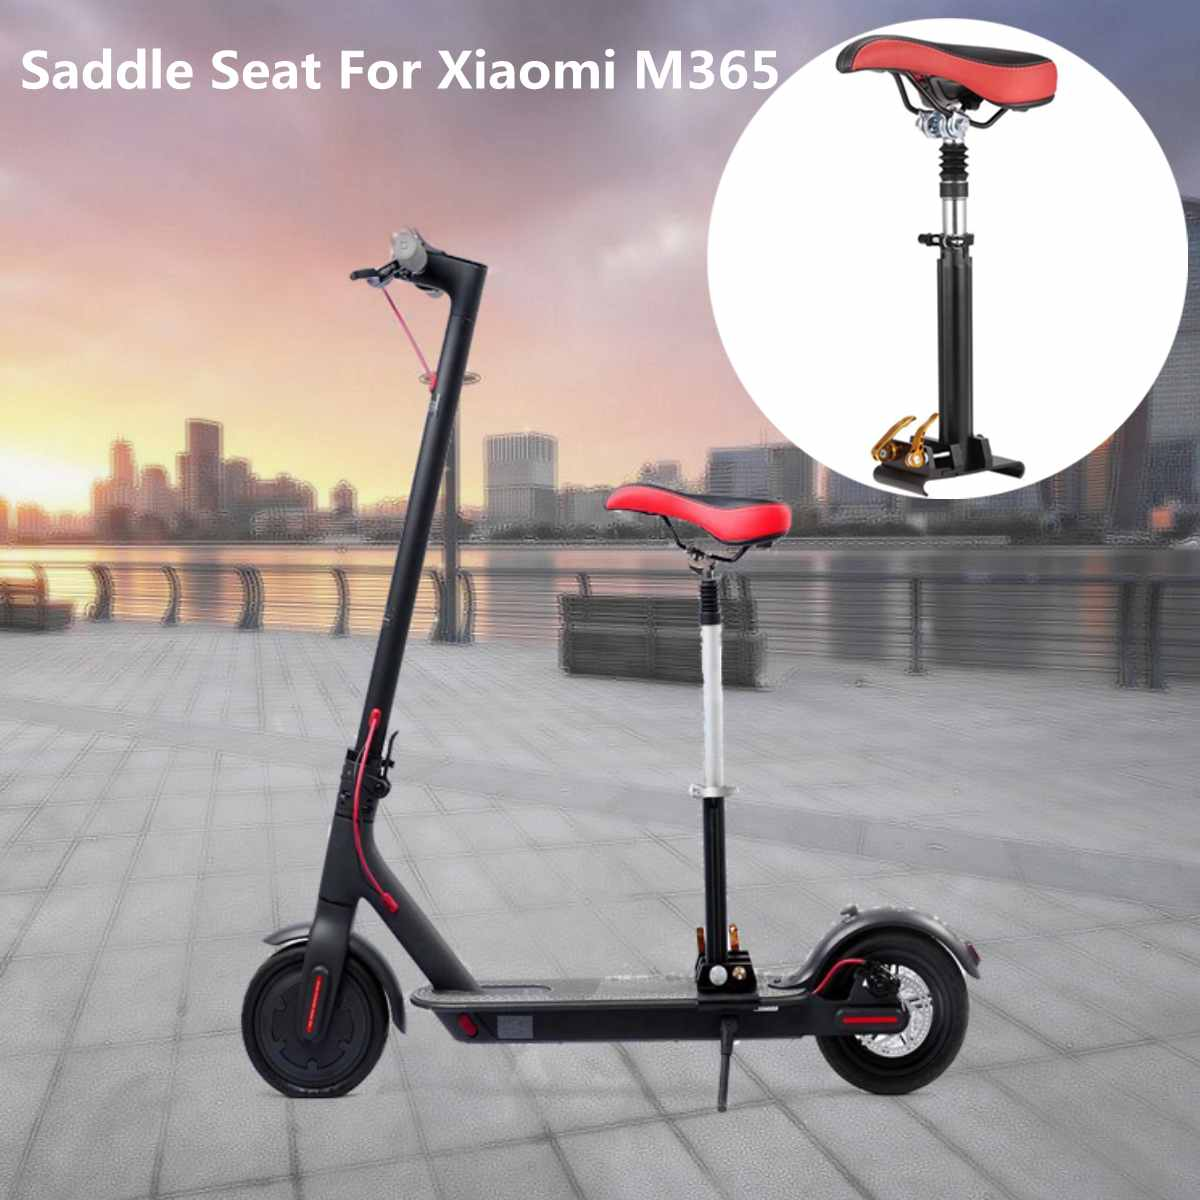 Electric Skateboard Saddle For Xiaomi Mijia M365 Electric Scooter Foldable Height Adjustable Shock-Absorbing Folding Seat Chair